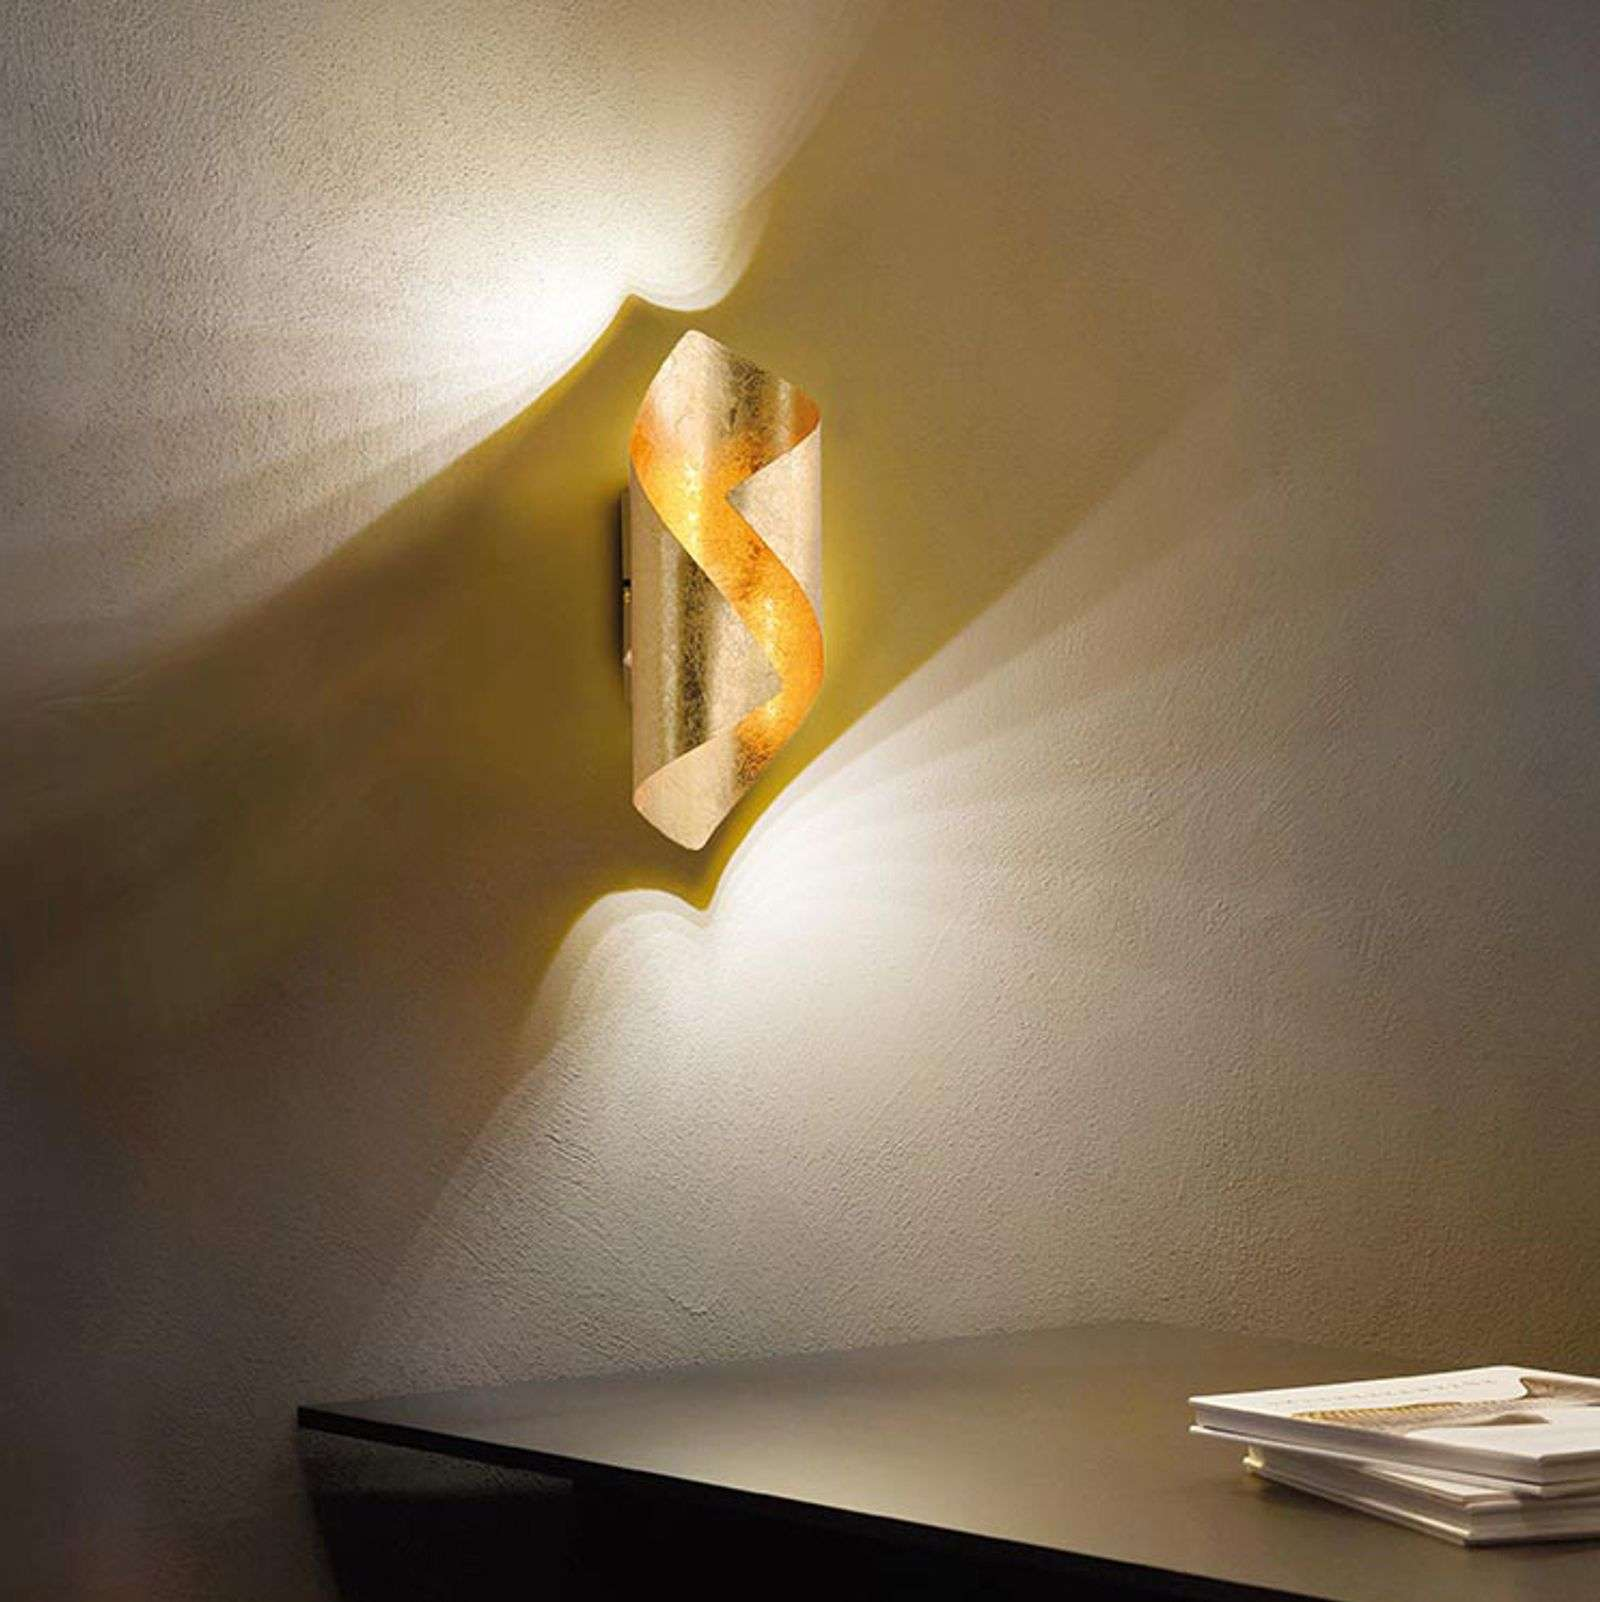 Originale applique a LED Nevis in metallo dorato